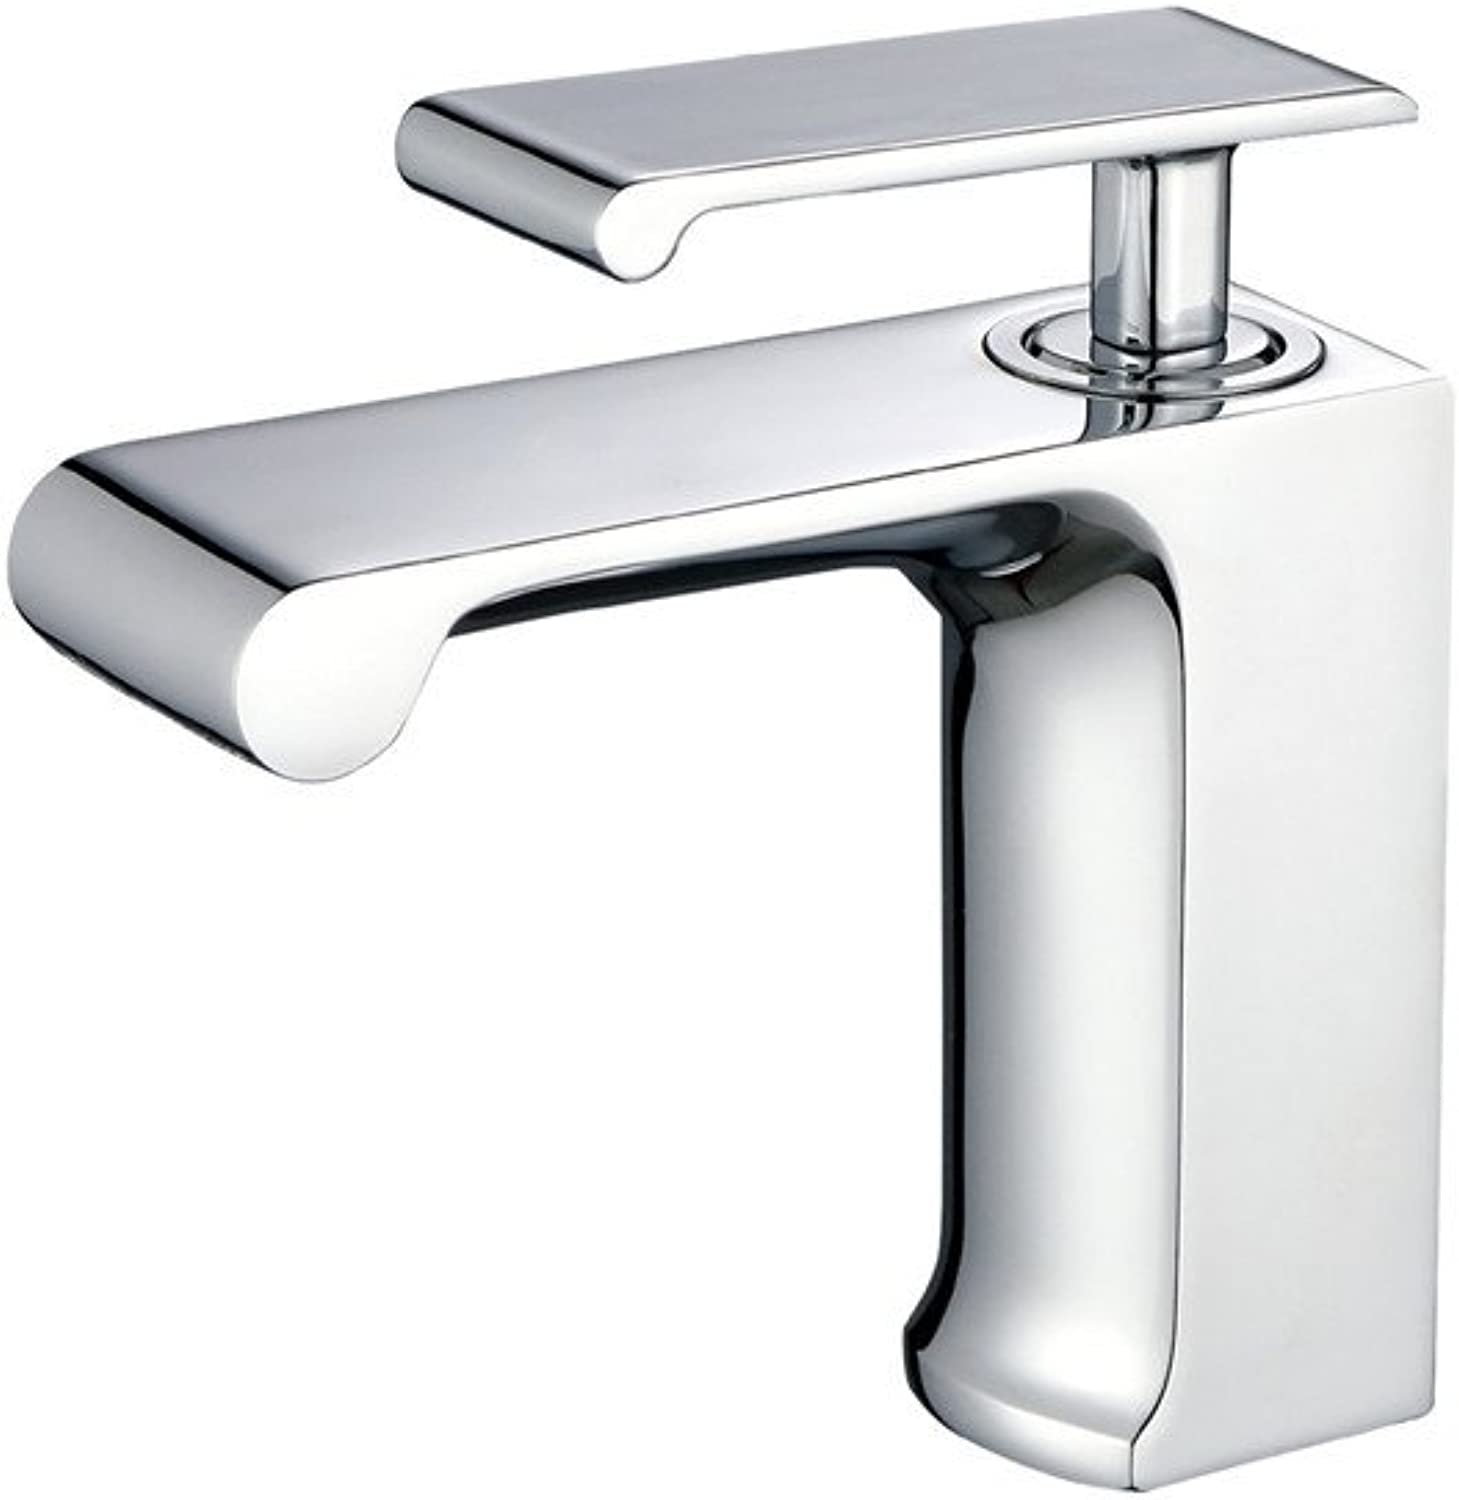 redOOY Taps Faucet Above Counter Basin Faucet Faucet Copper gold Basin Single Hole Hot And Cold Plating Waterfall Washbasin